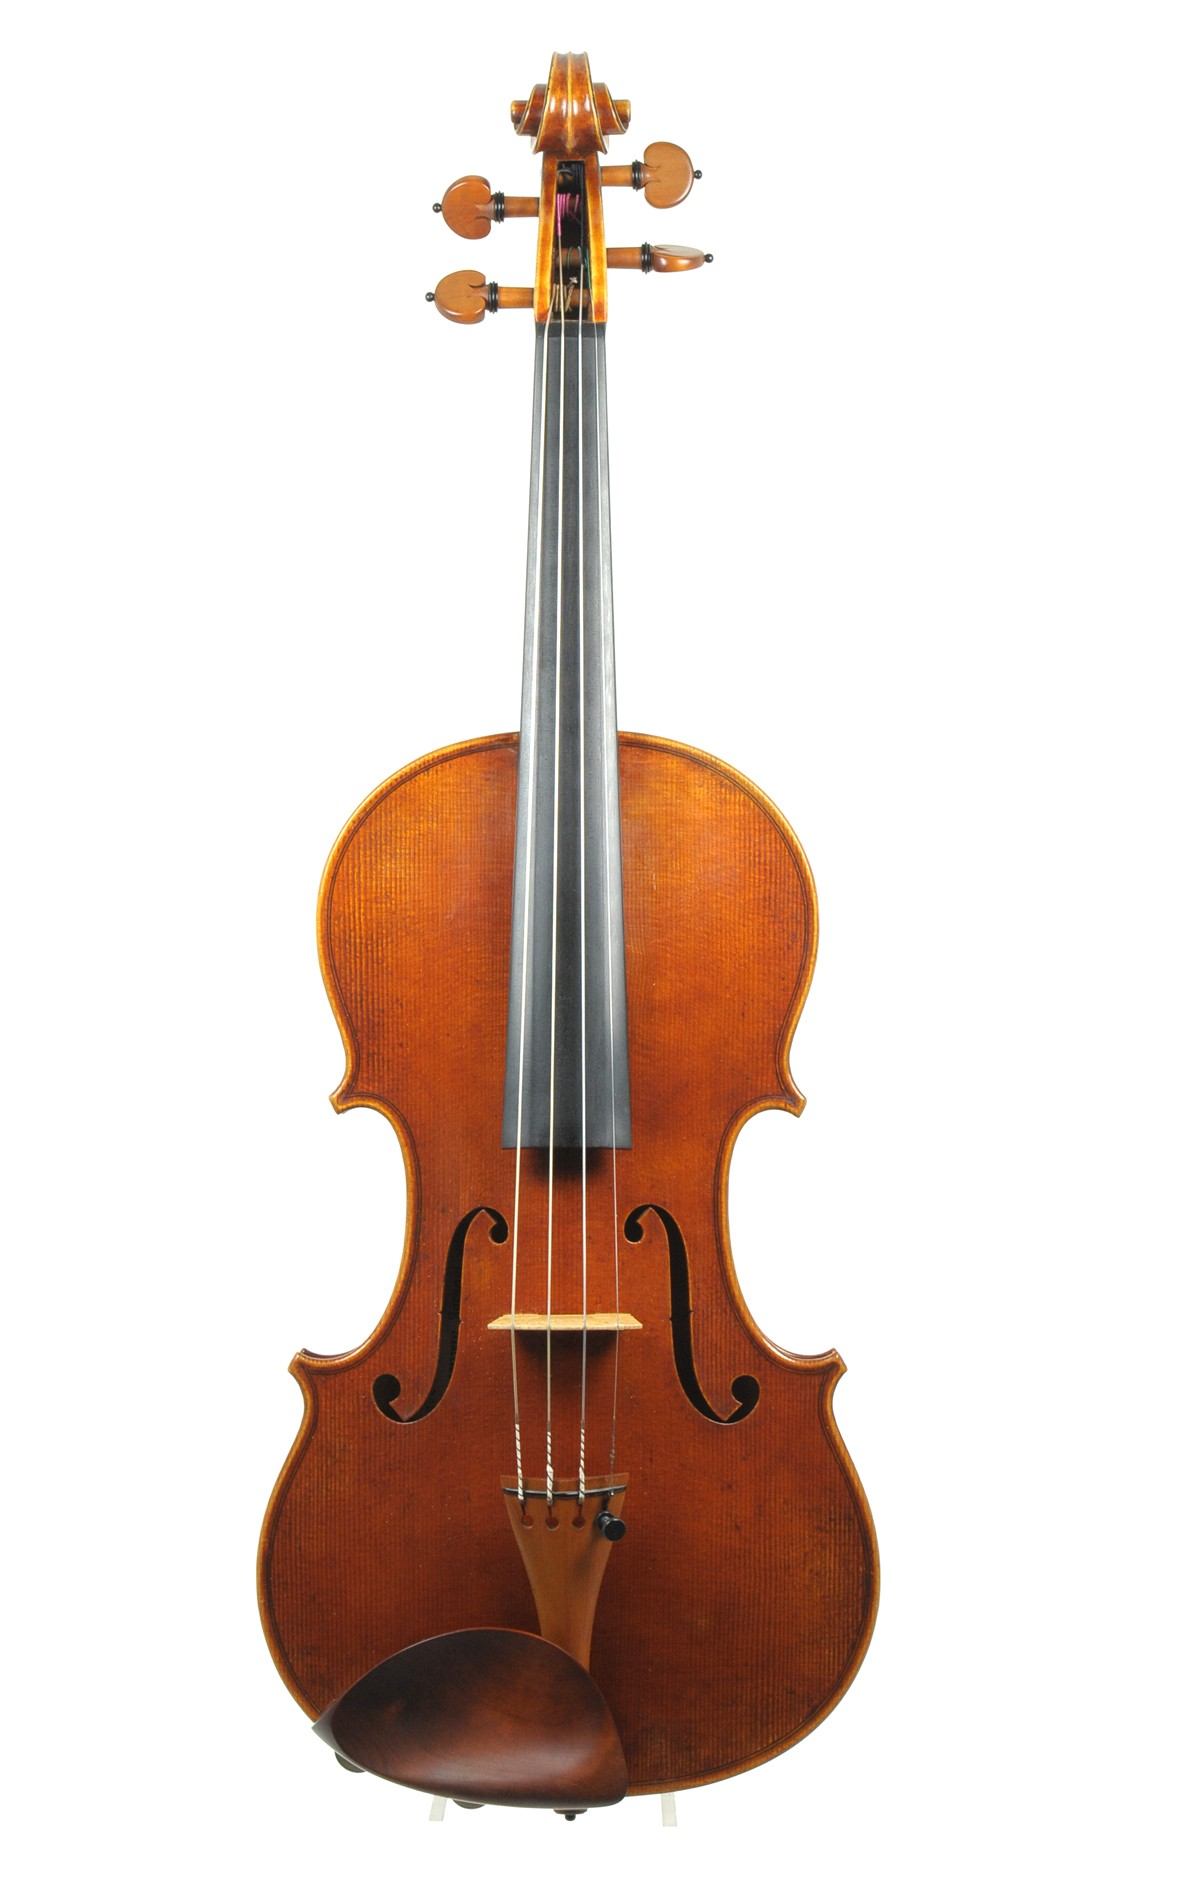 Contemporary master violin by Christoph Götting